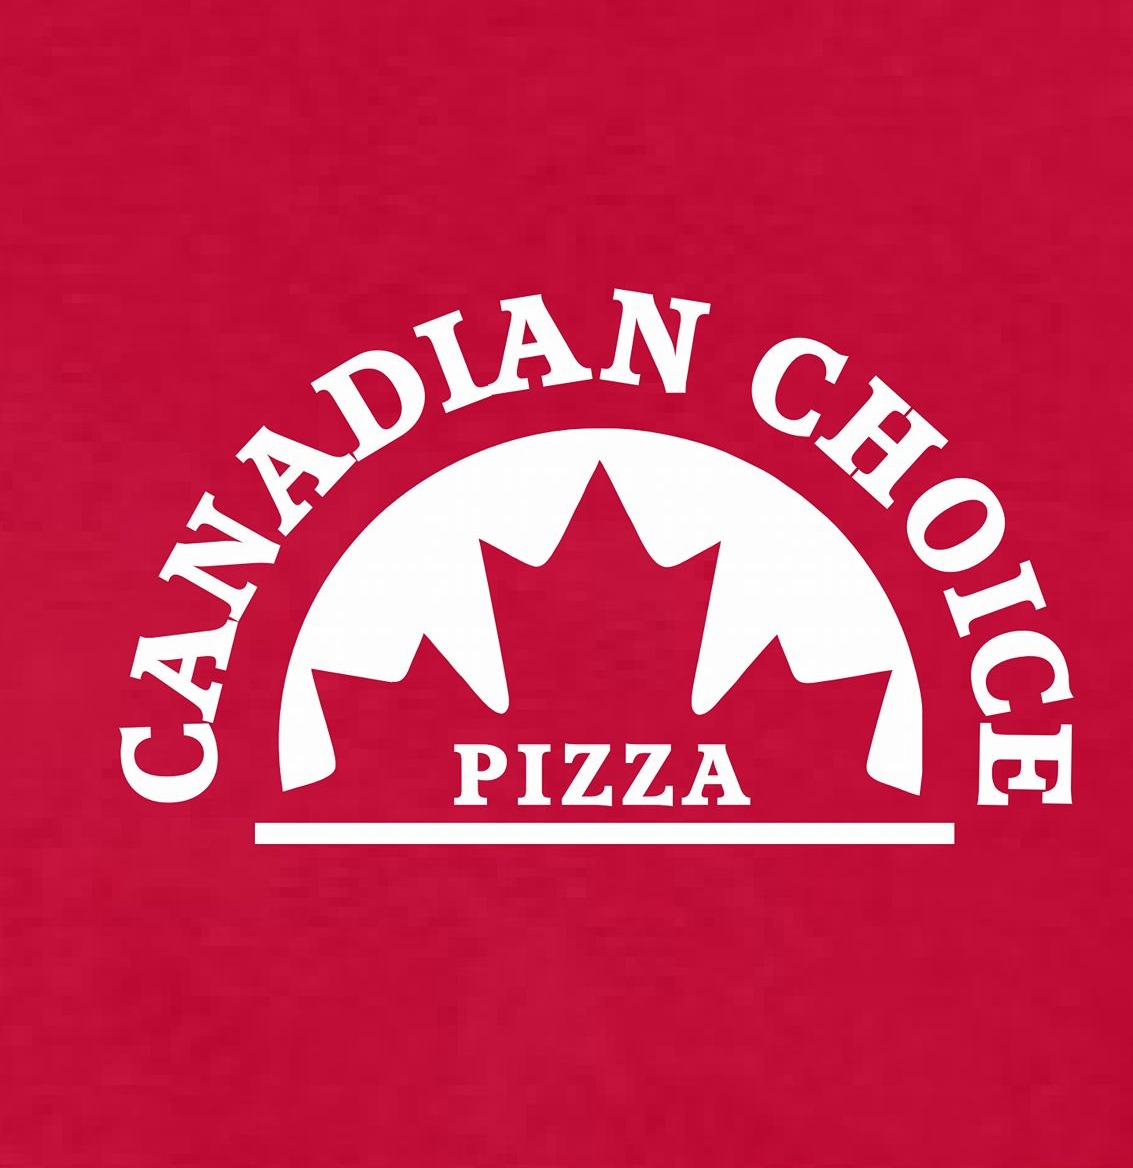 Canadian Choice Pizza and Donairs